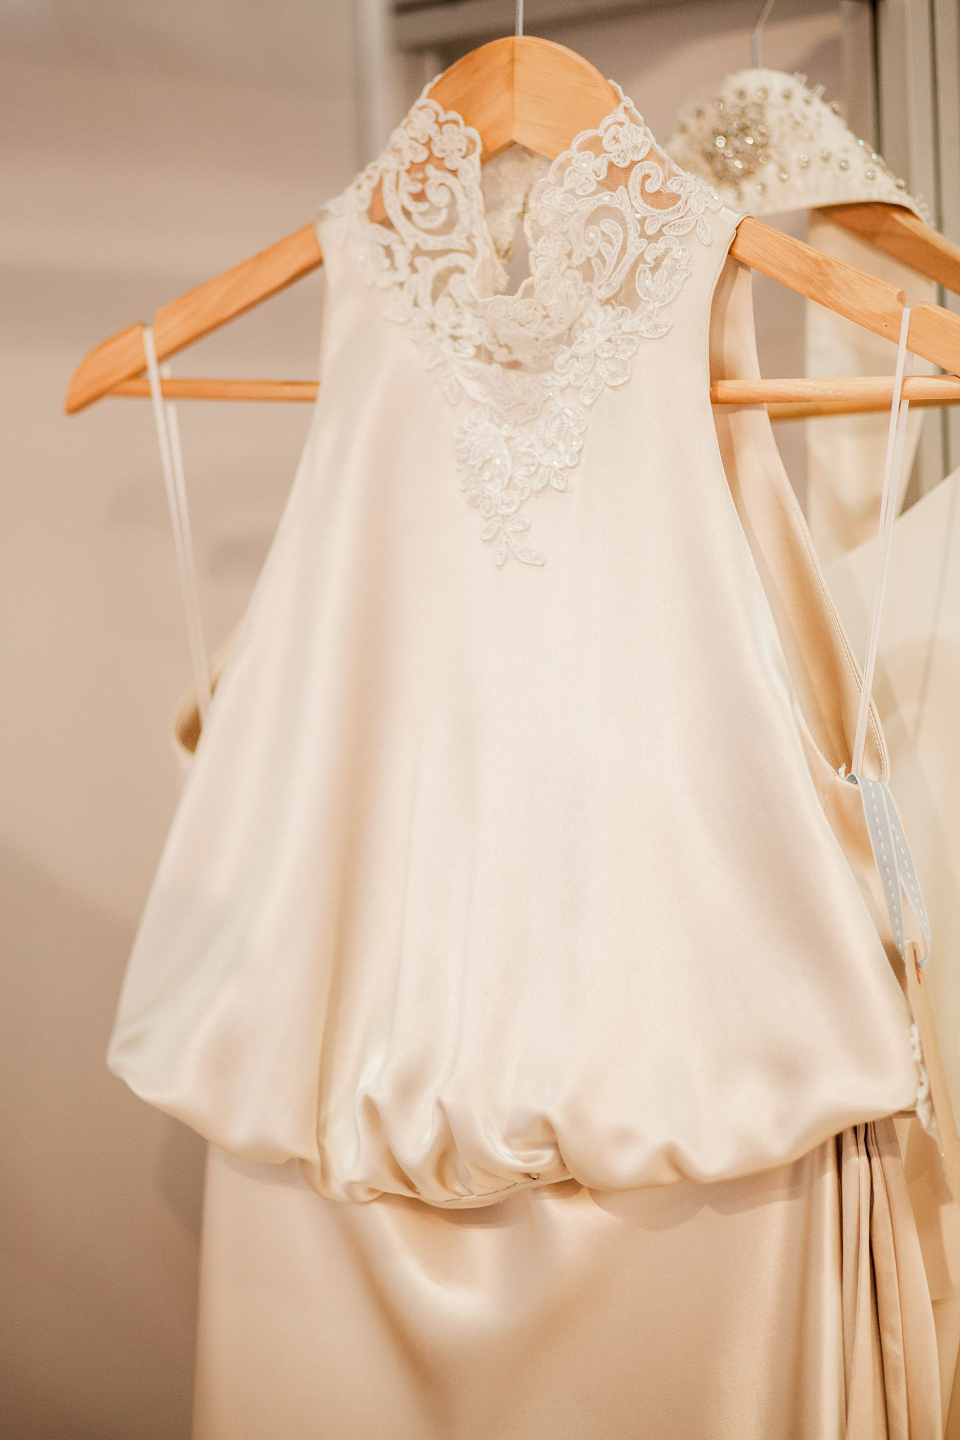 Emma Tindley wedding dresses at The White Gallery, London, April 2014